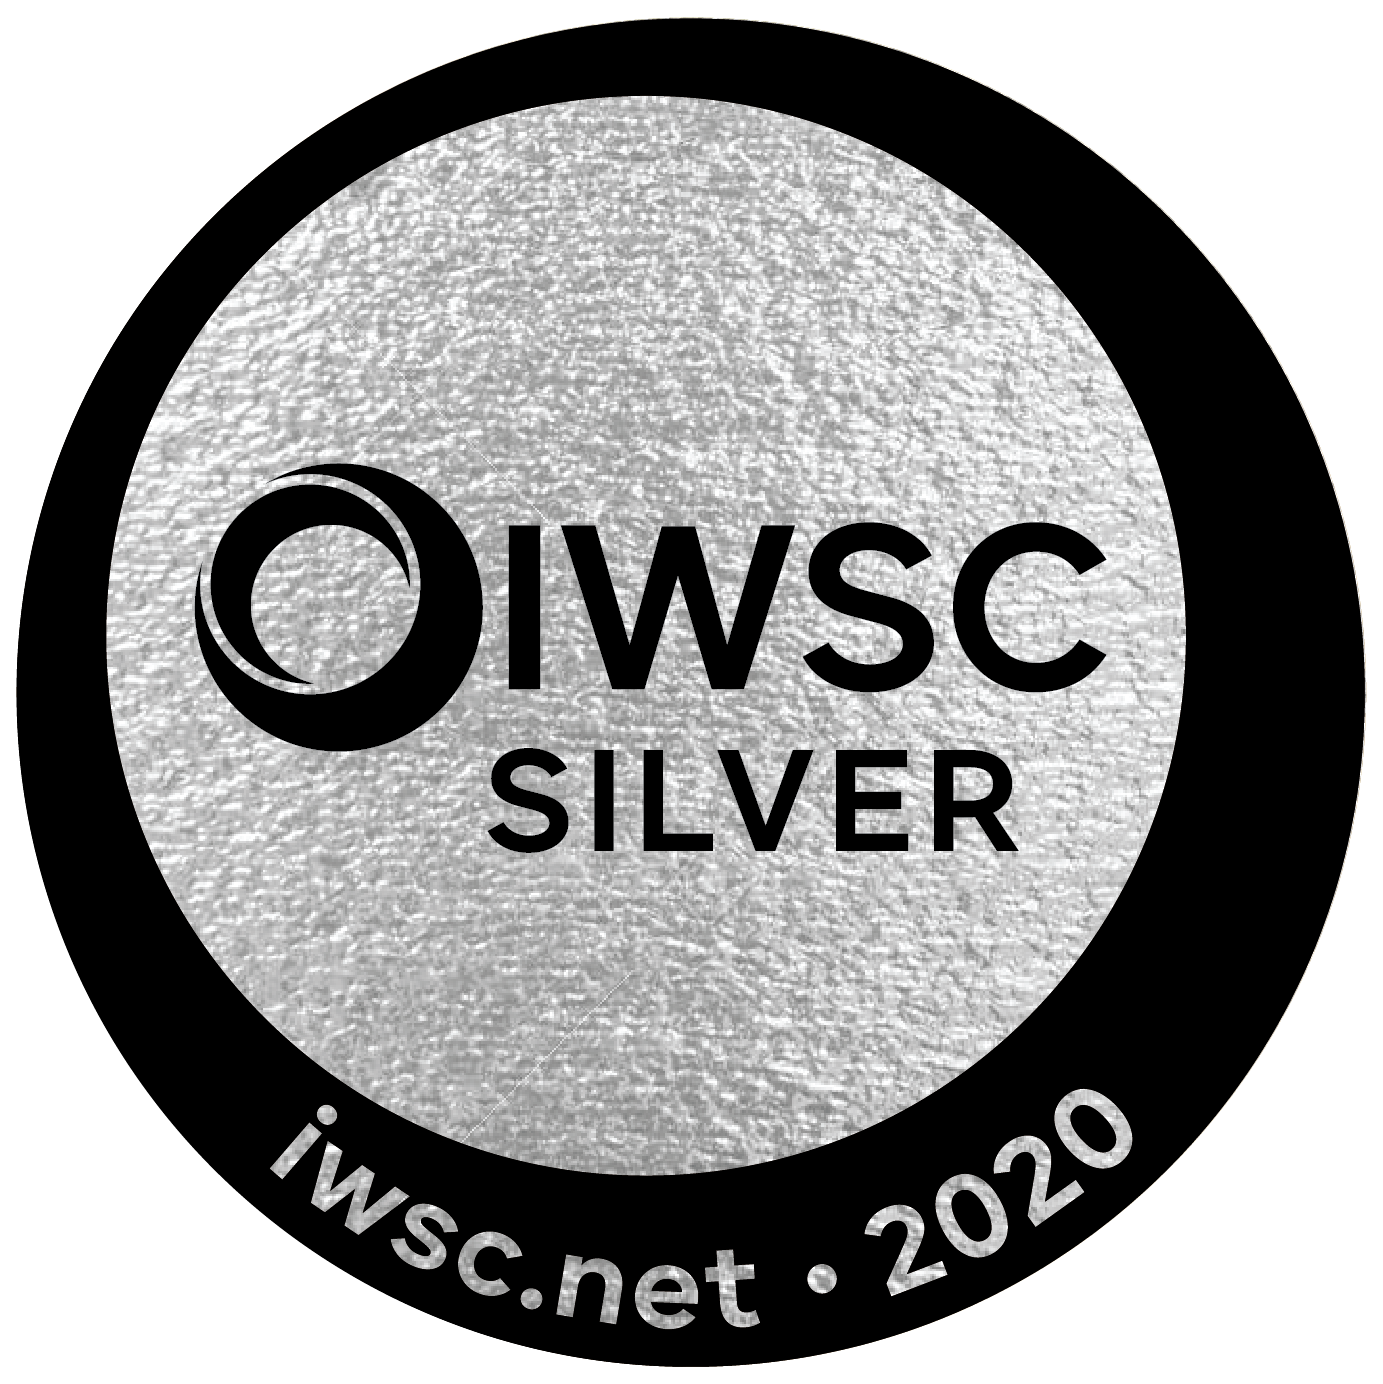 An Silver award won by the Stillery amsterdam which reads IWSC Silver